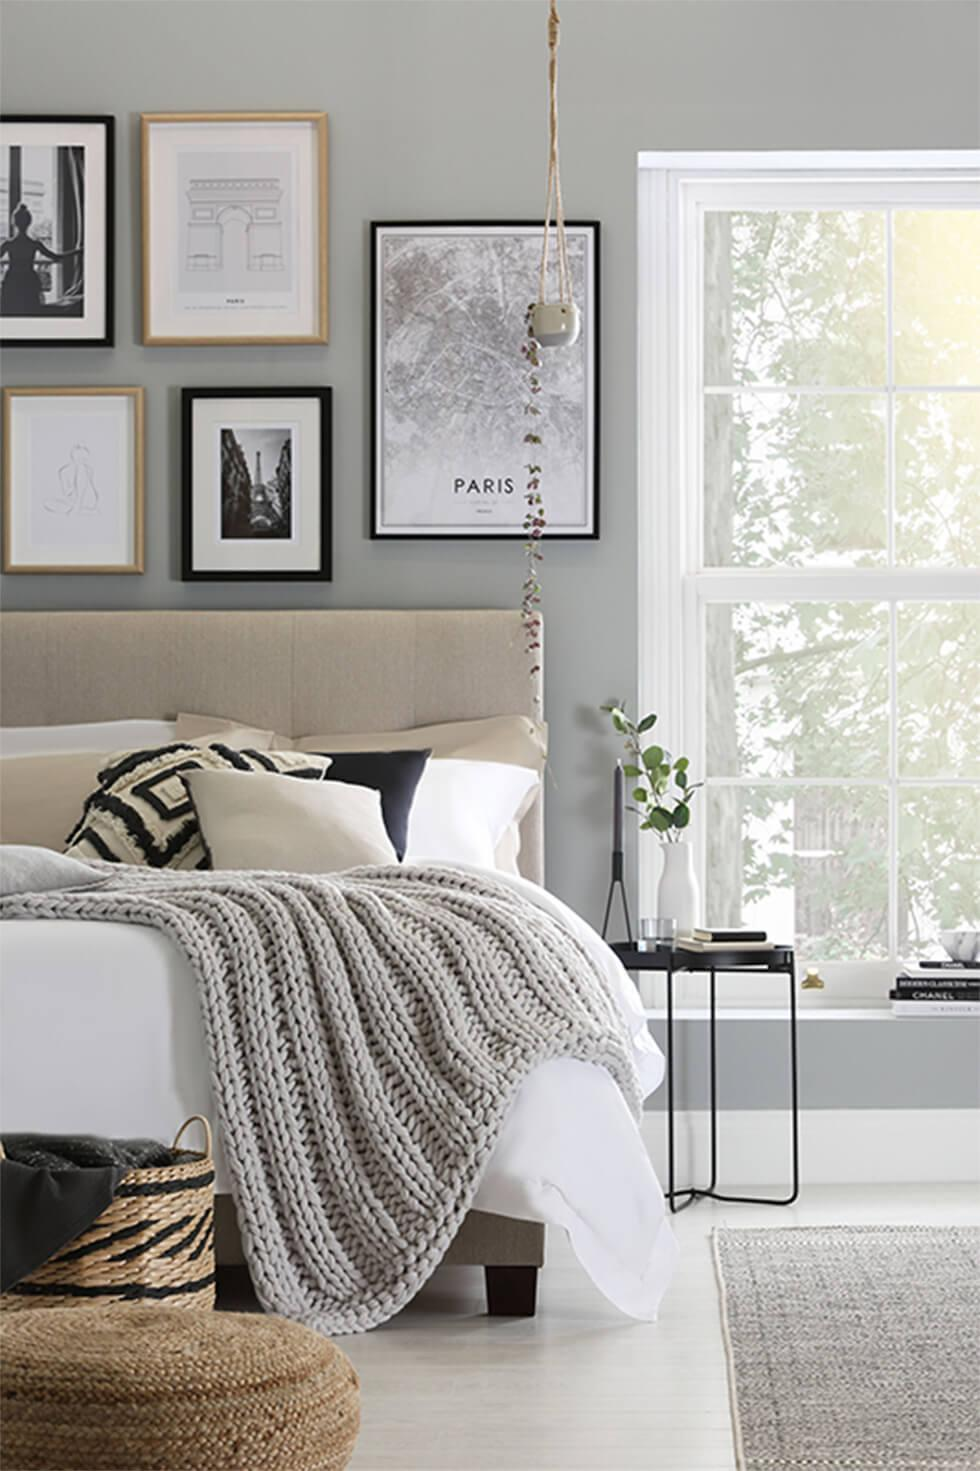 Monochrome bedroom with a framed gallery wall